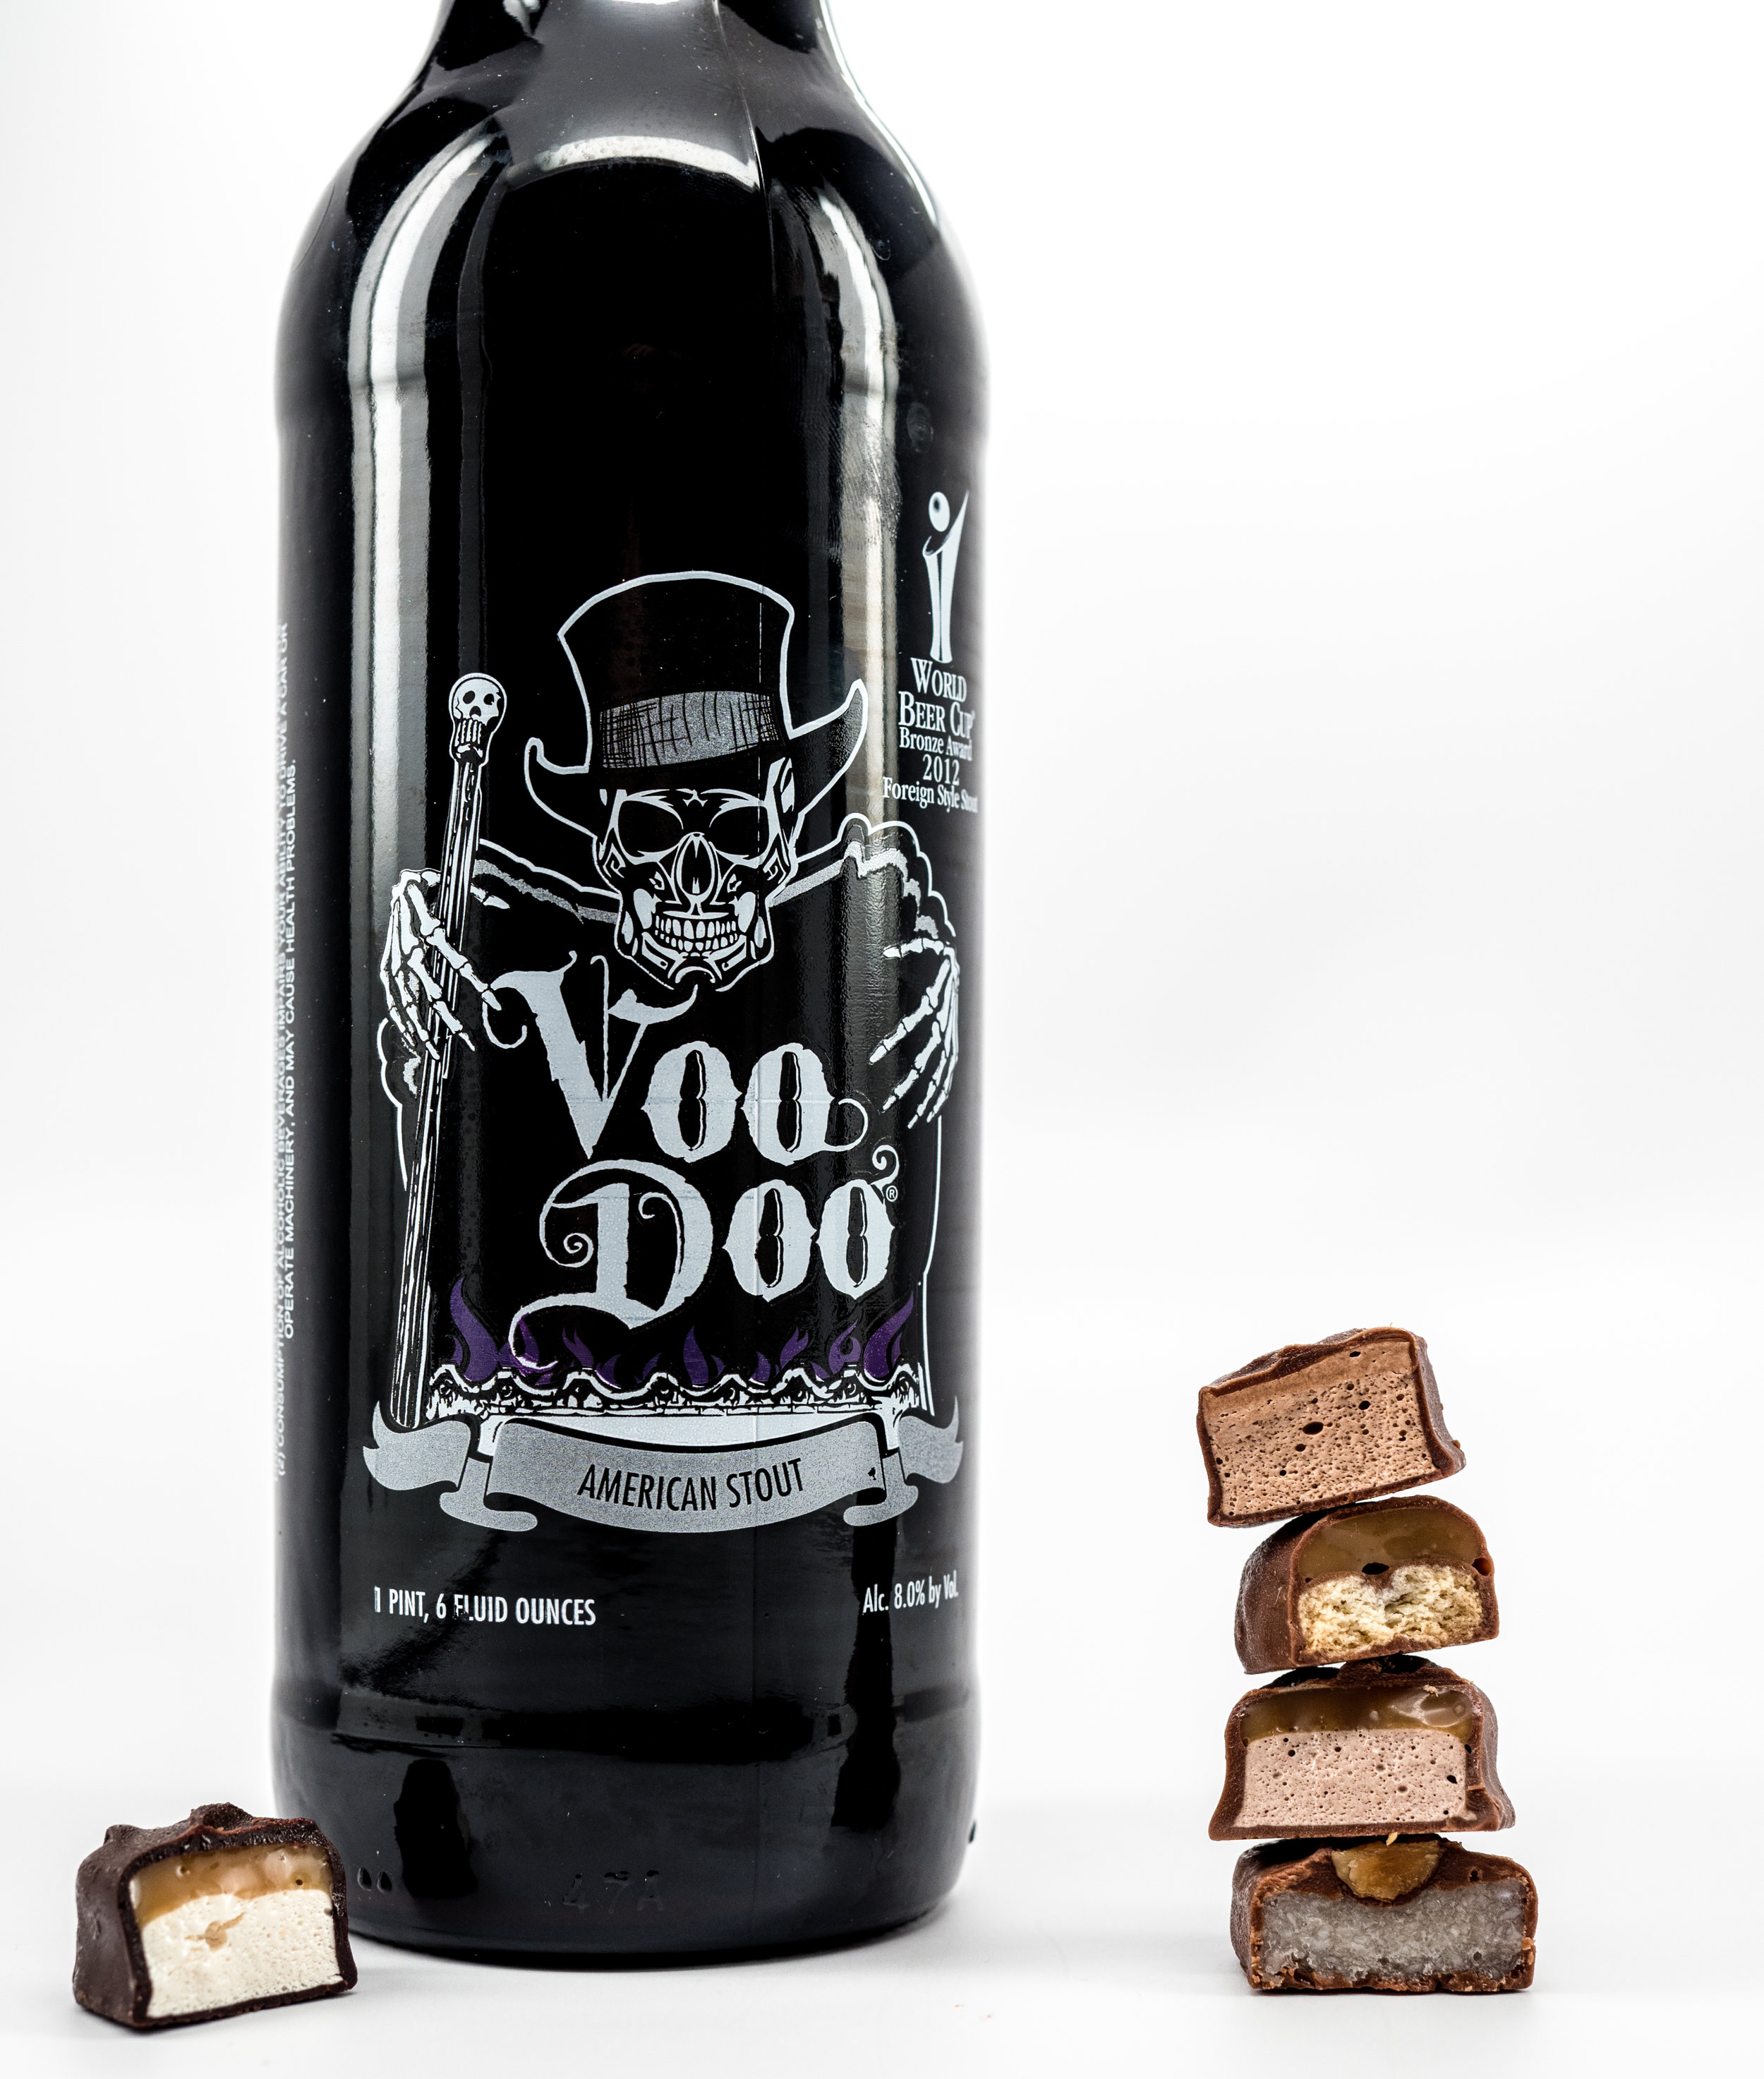 Musings by the Glass - Pairing Beer with Halloween Candy - Cholocate Bars and Stout